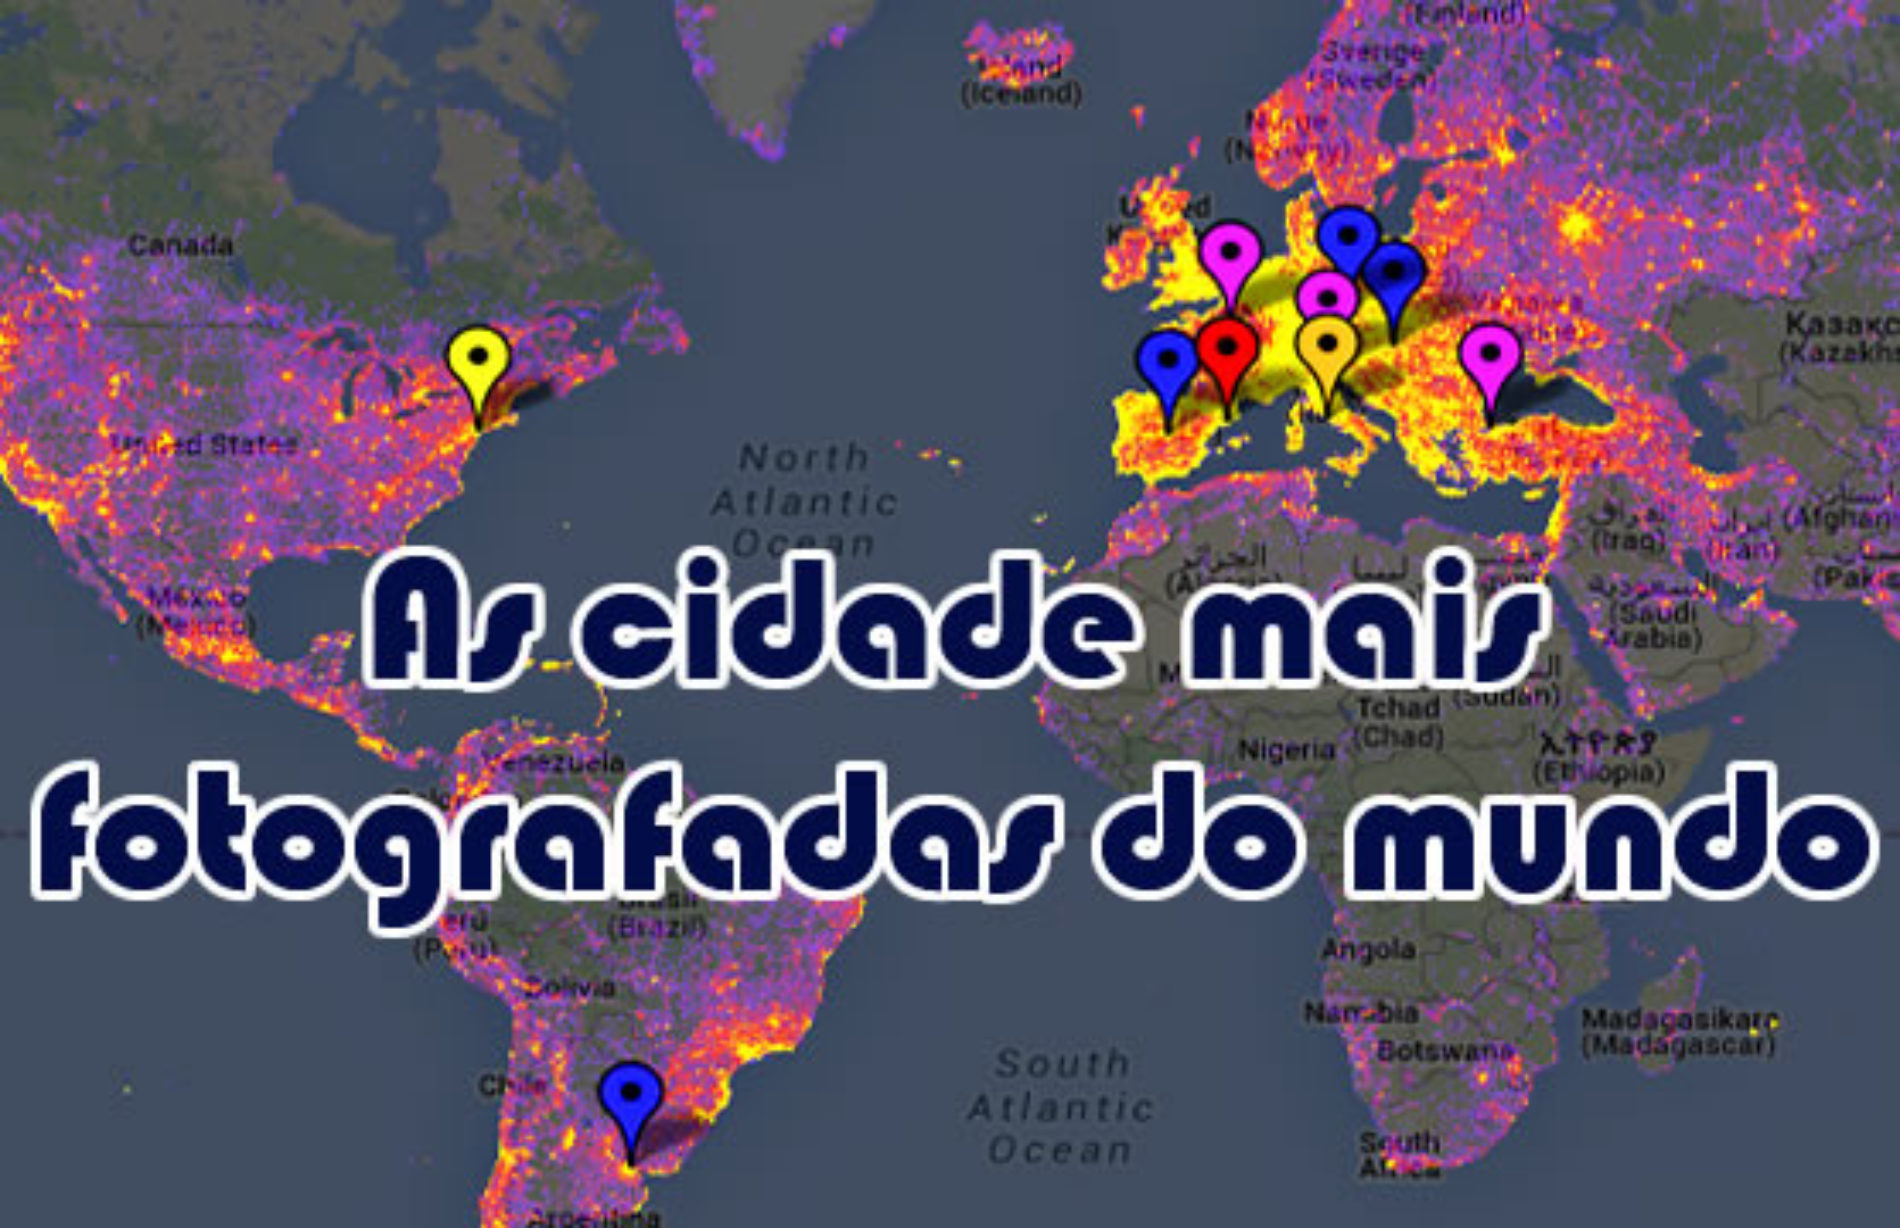 As cidades mais fotografadas do mundo – sightsmap.com